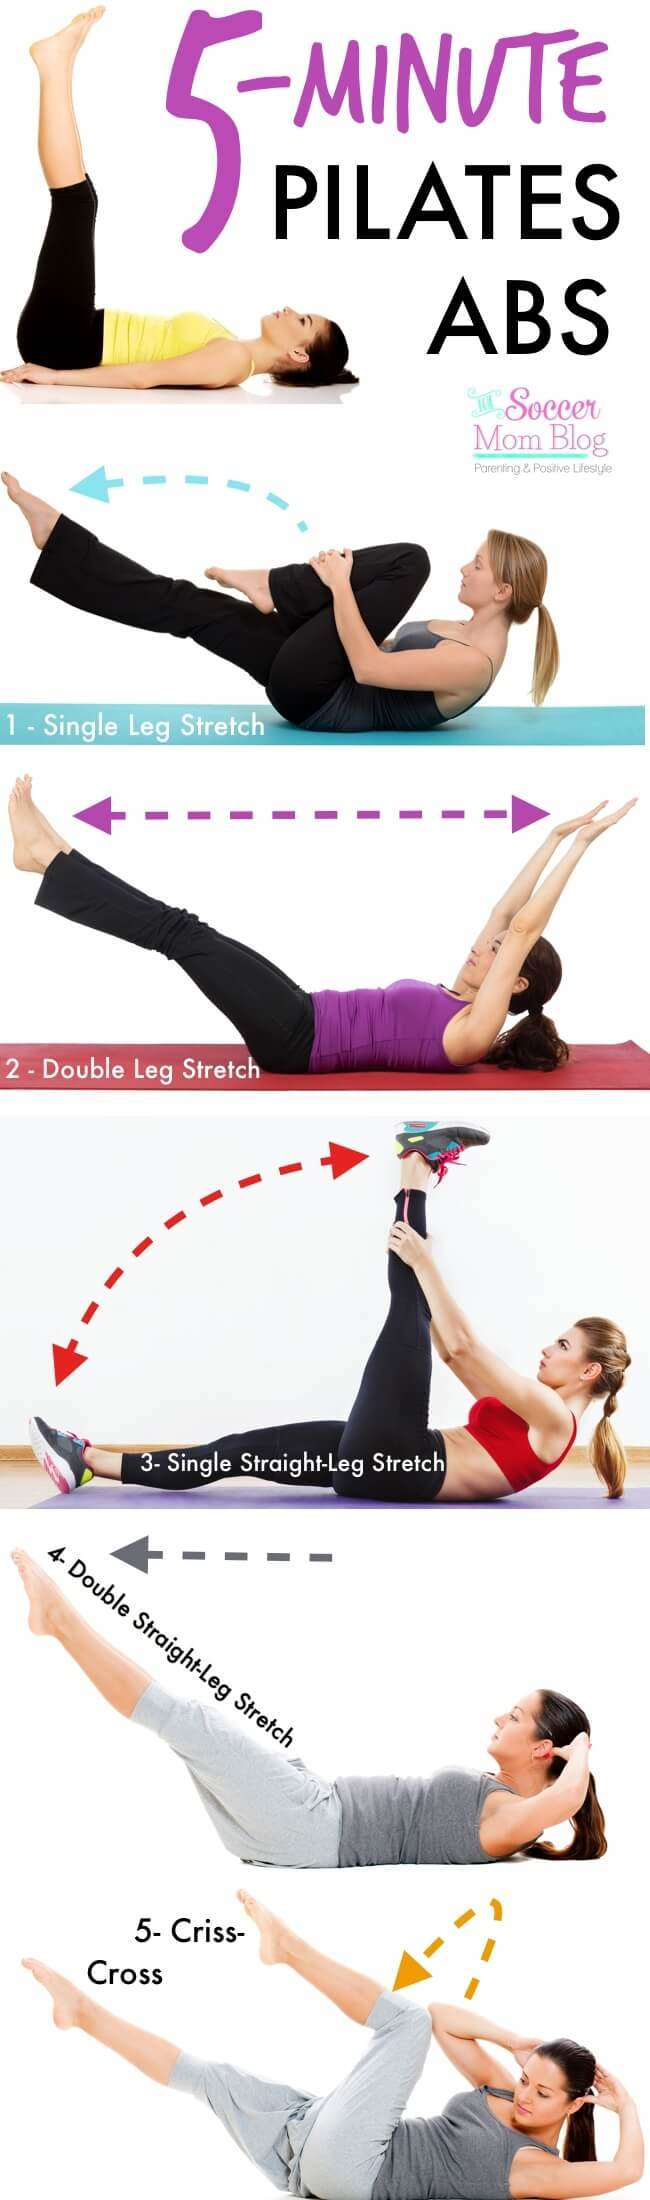 5-Minute Abs 5-Minute Abs new pics